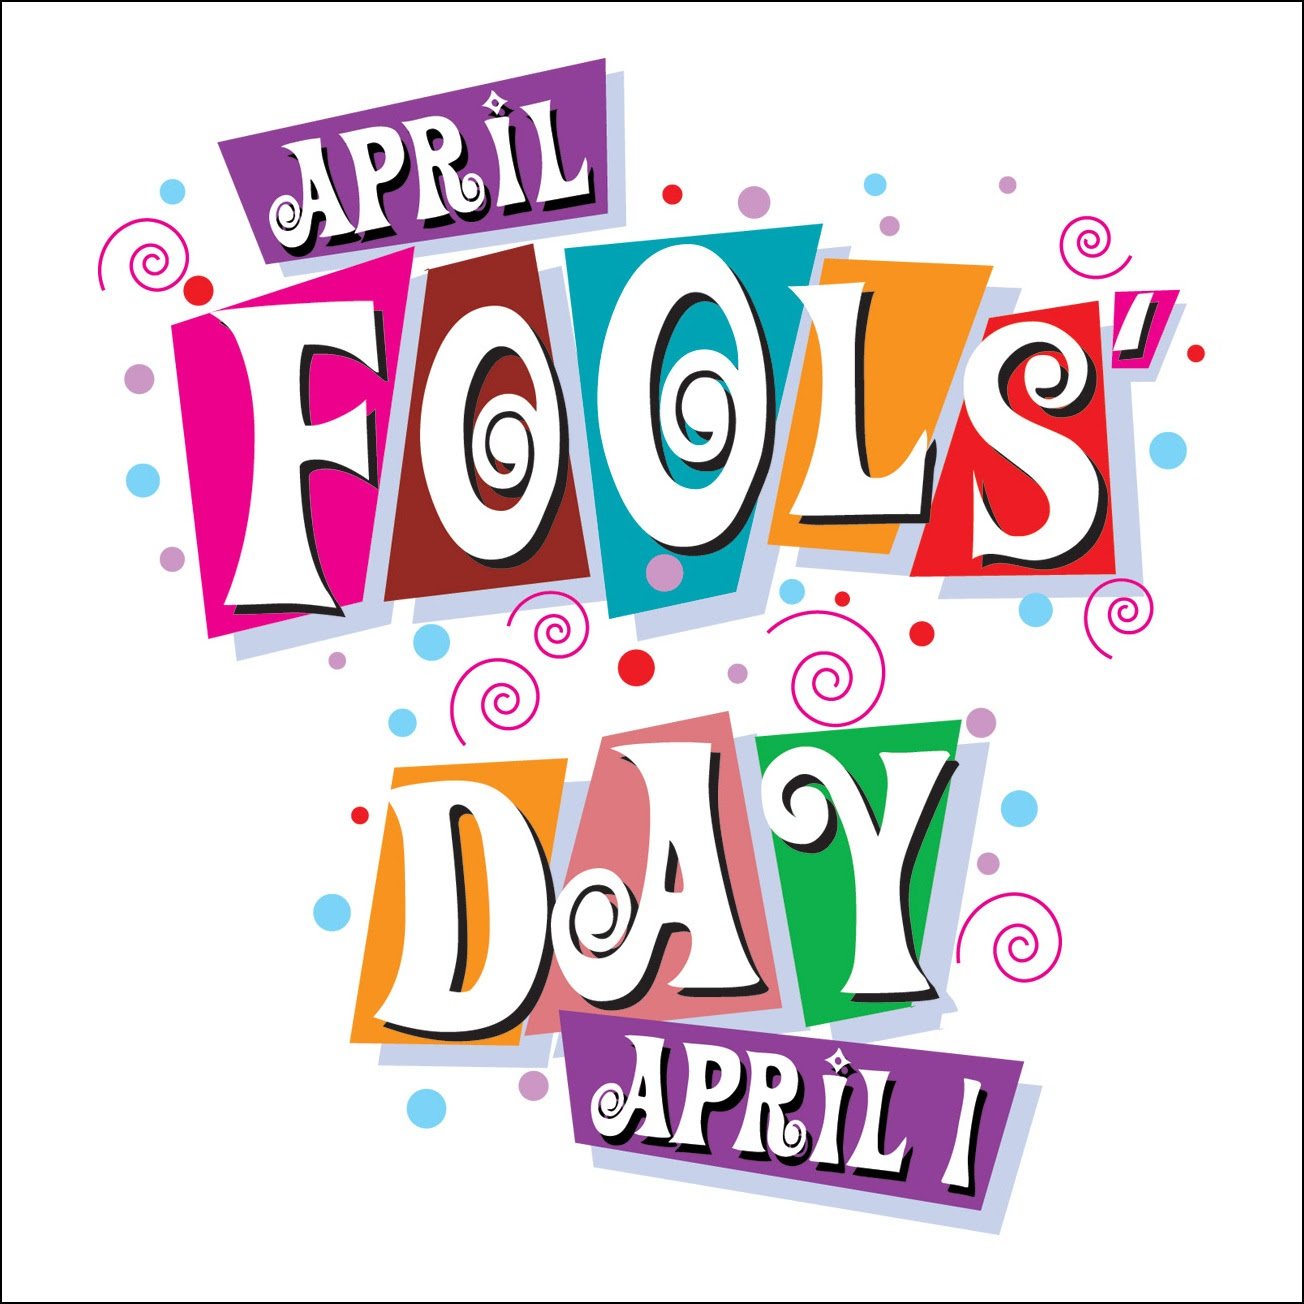 Free Clipart Images April Fools Day  ClipArt Best